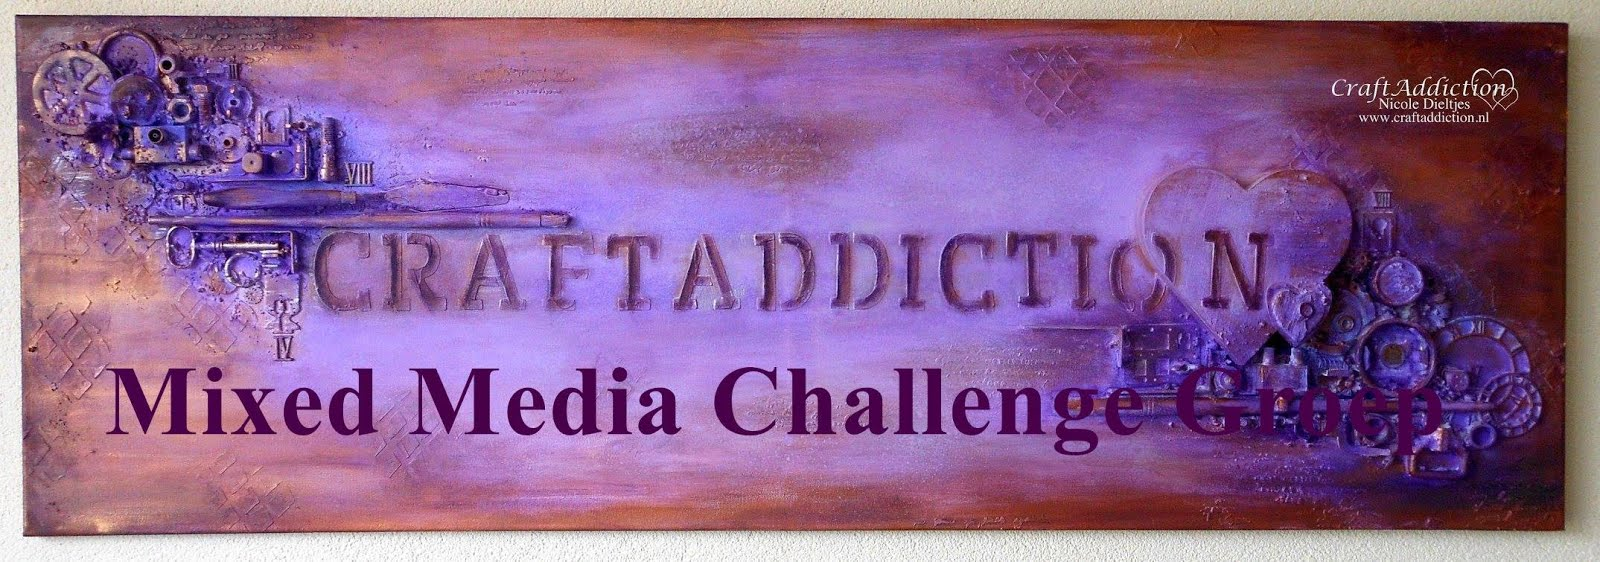 CraftAddiction Mixed Media Challenge groep op Facebook